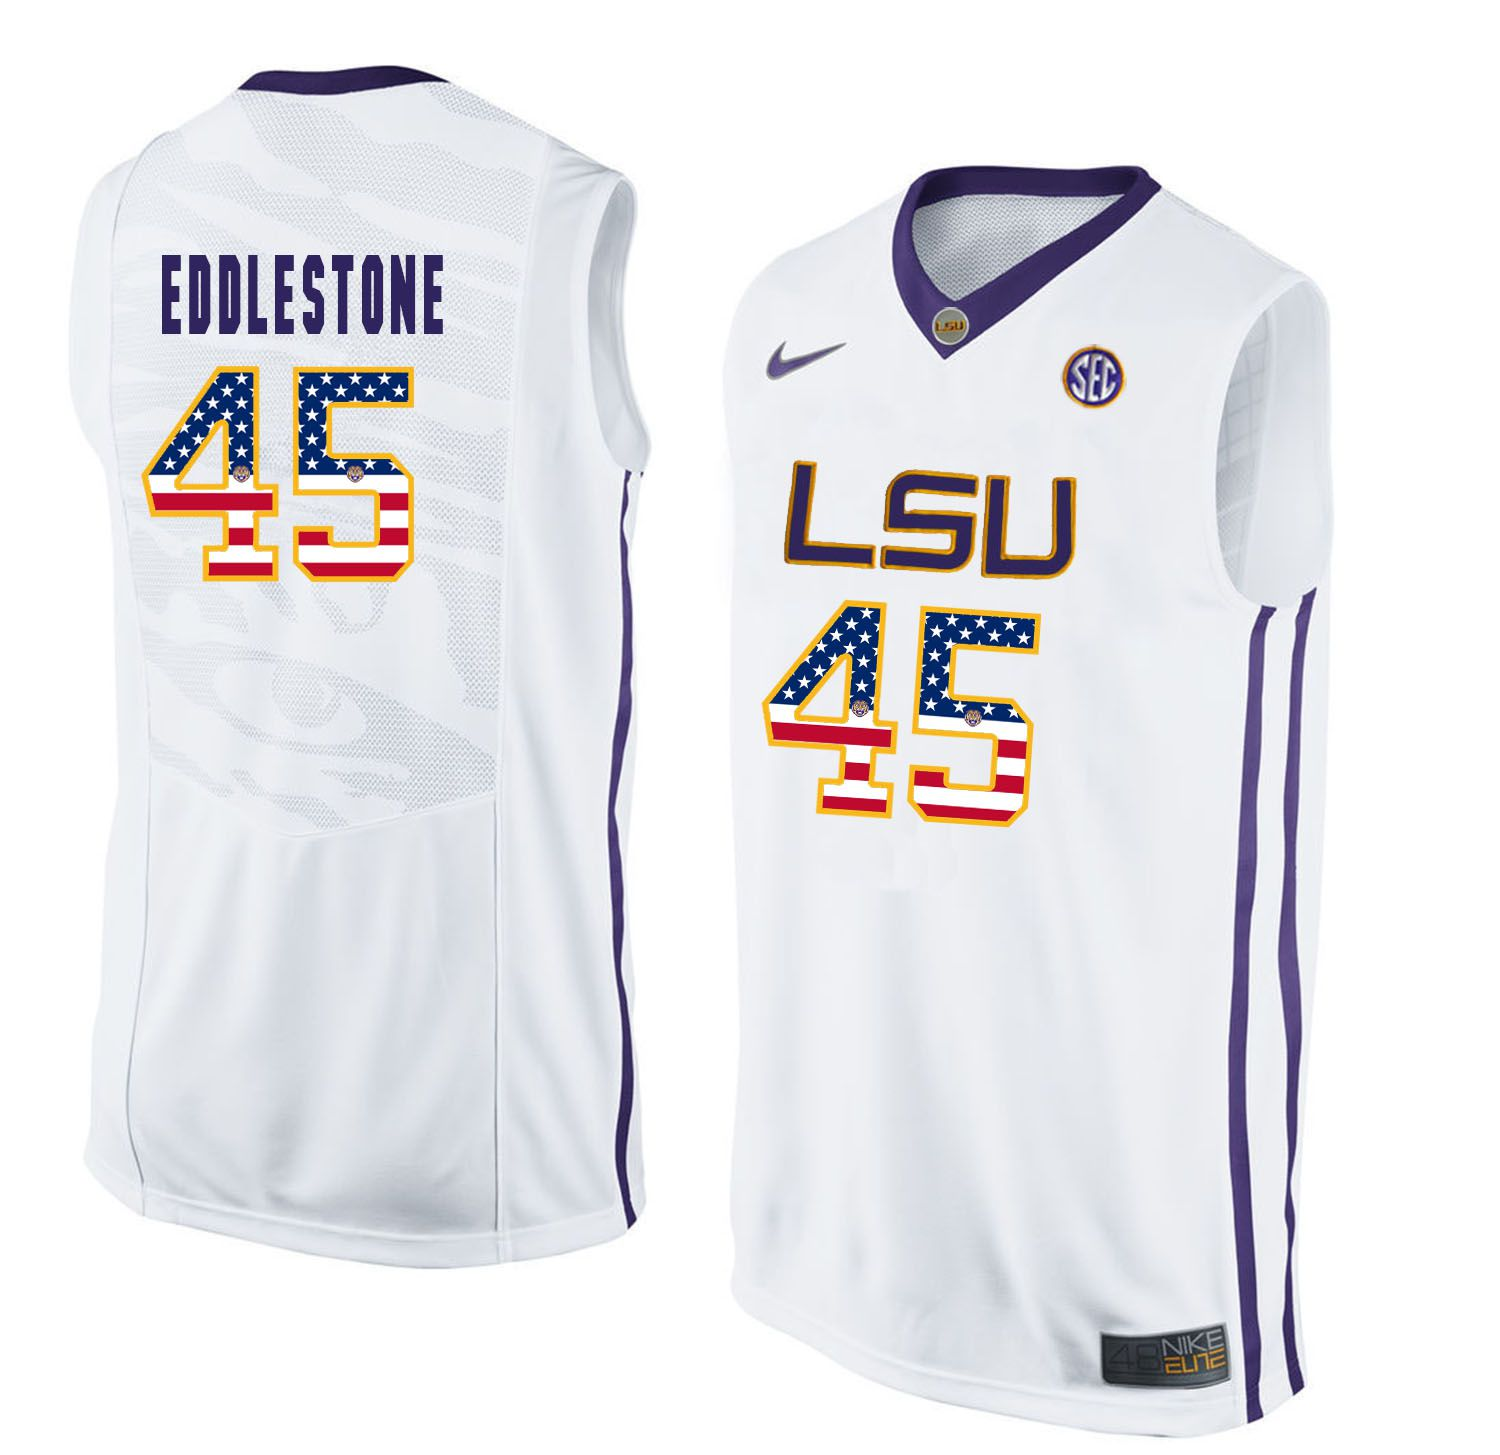 Men LSU Tigers 45 Eddlestone White Flag Customized NCAA Jerseys